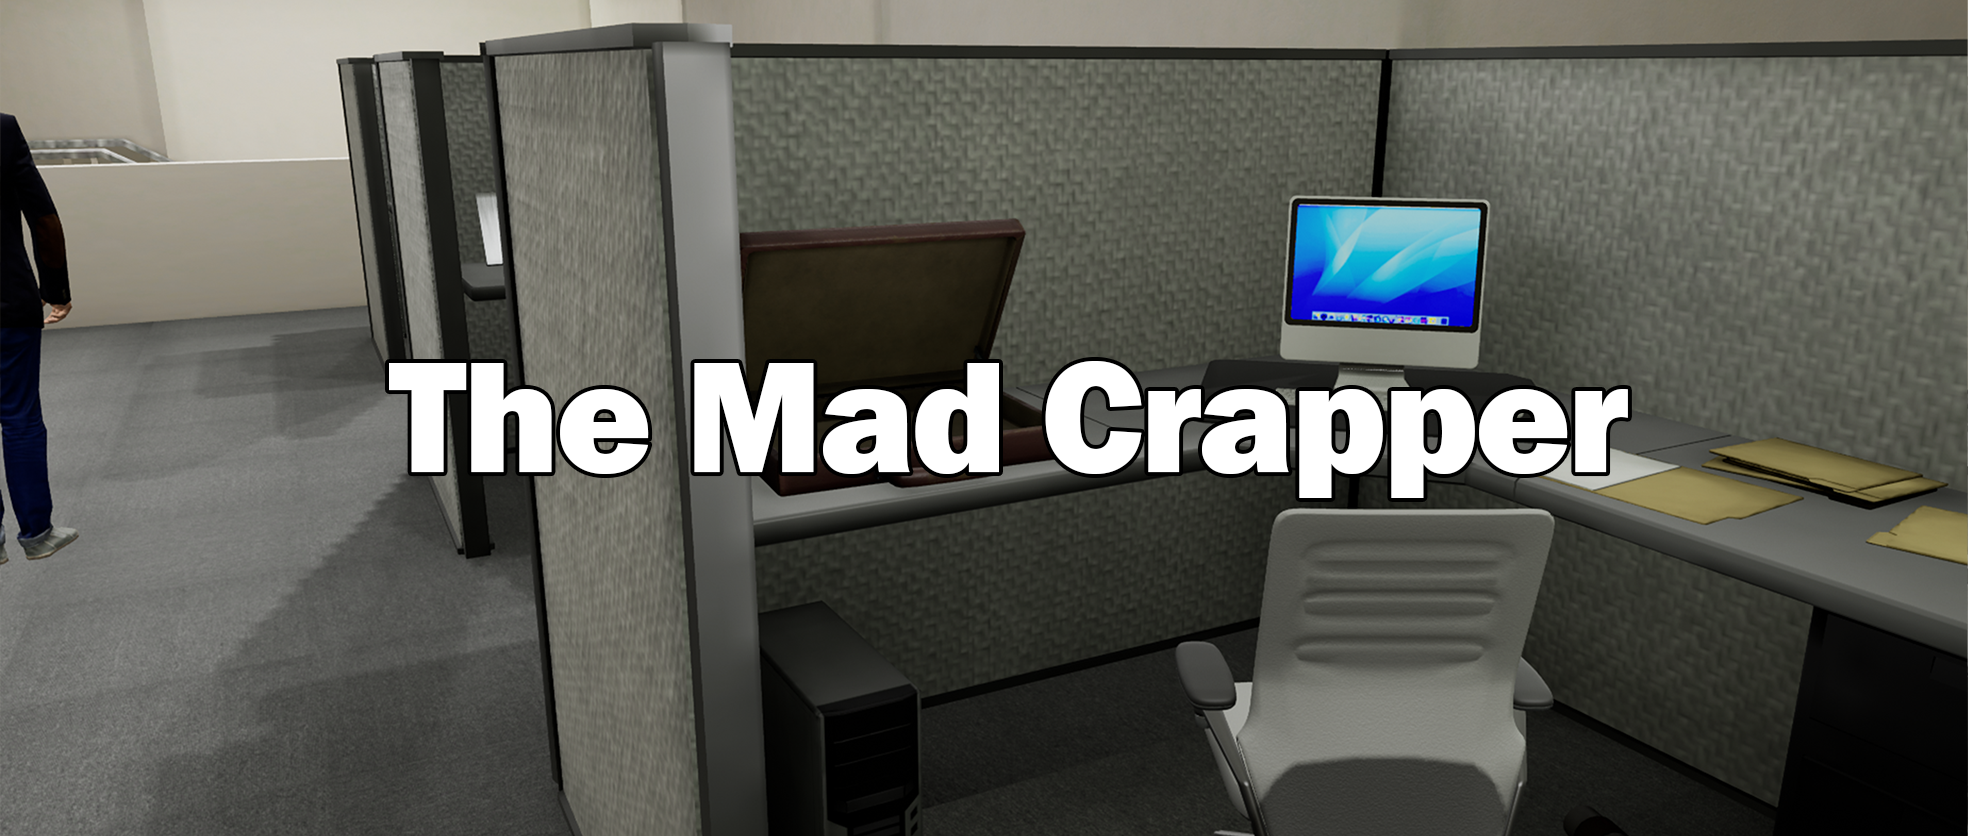 The Mad Crapper